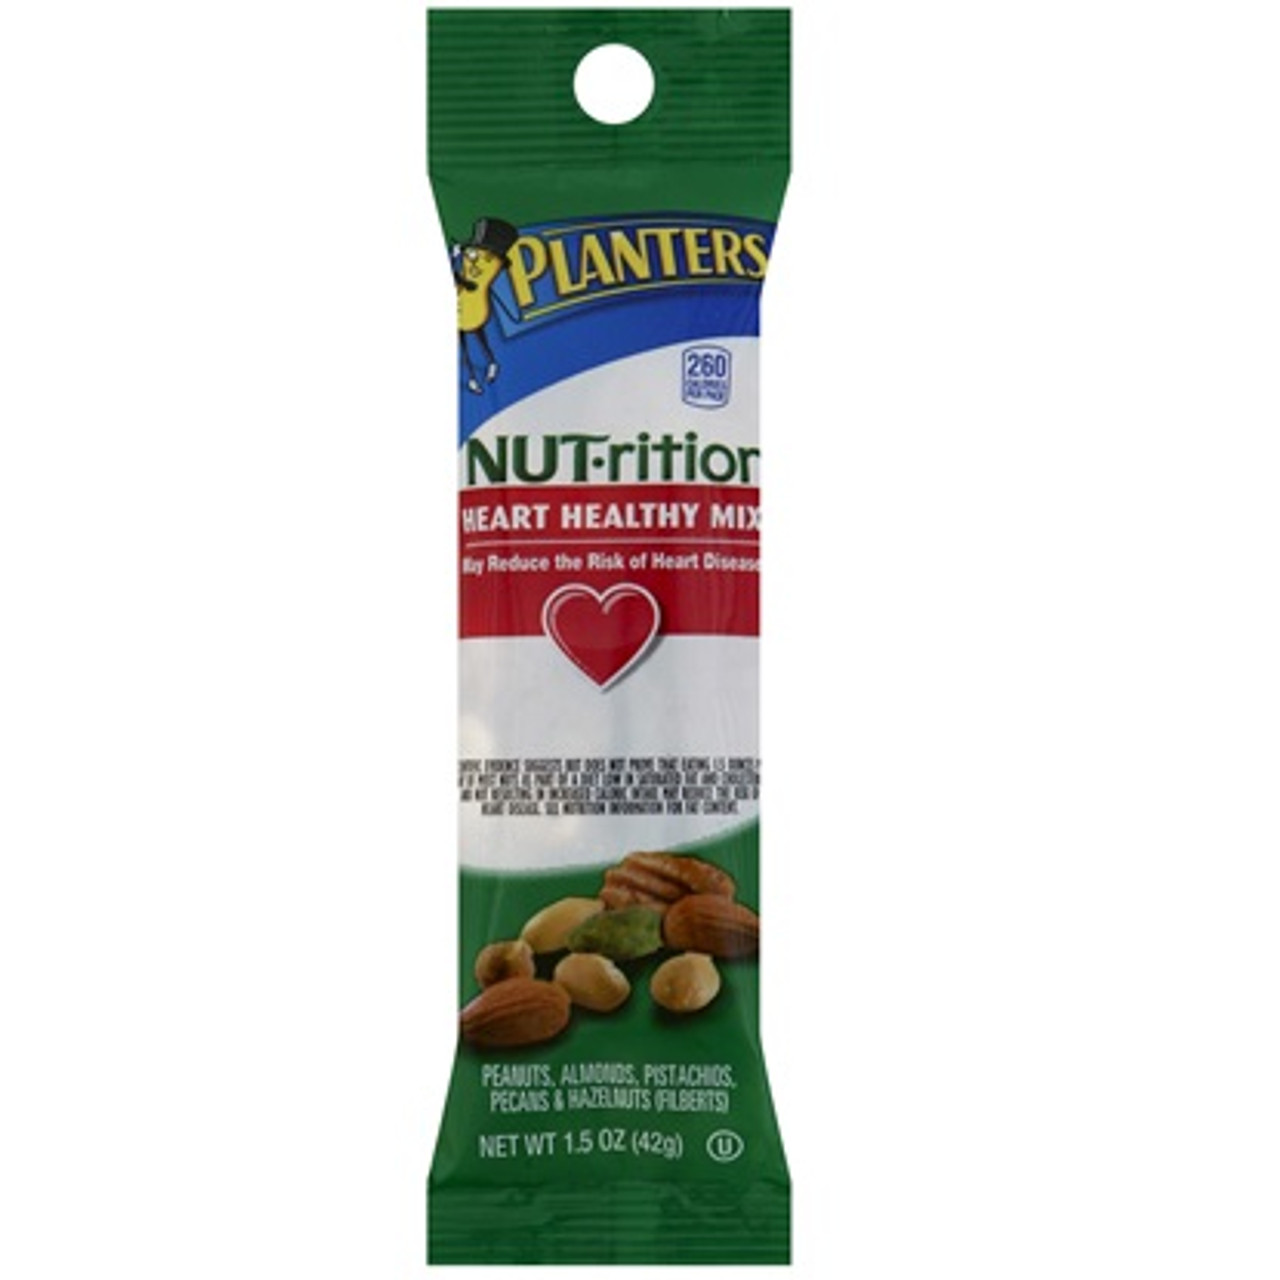 Planters Nut-rition, Healthy Mix, 1.5 oz. bag (12 count ... on healthy design, healthy cover, healthy live, healthy old, healthy shape, healthy milk, healthy flour,